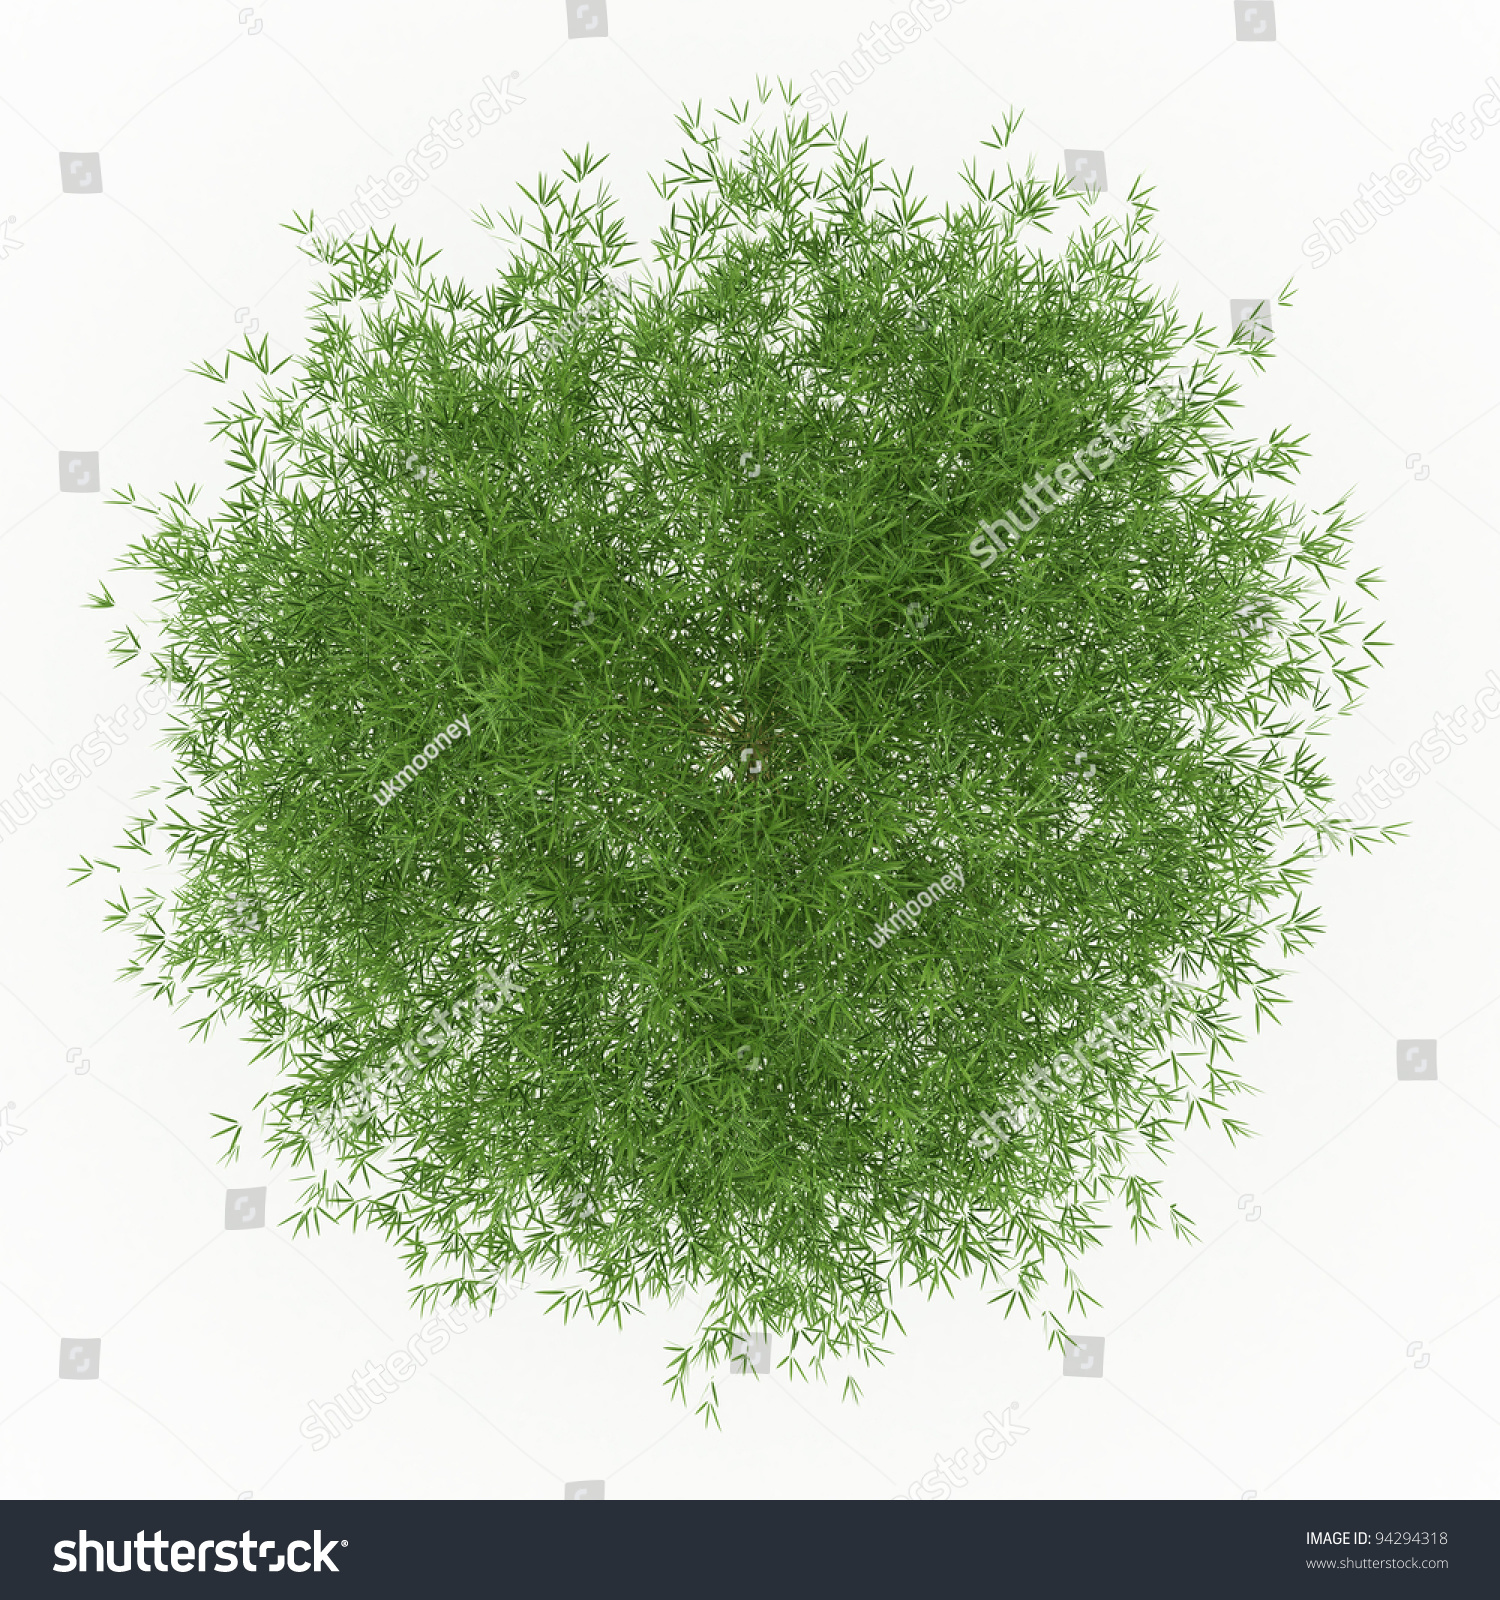 Top View Of Bamboo With Green Leaves Isolated On White